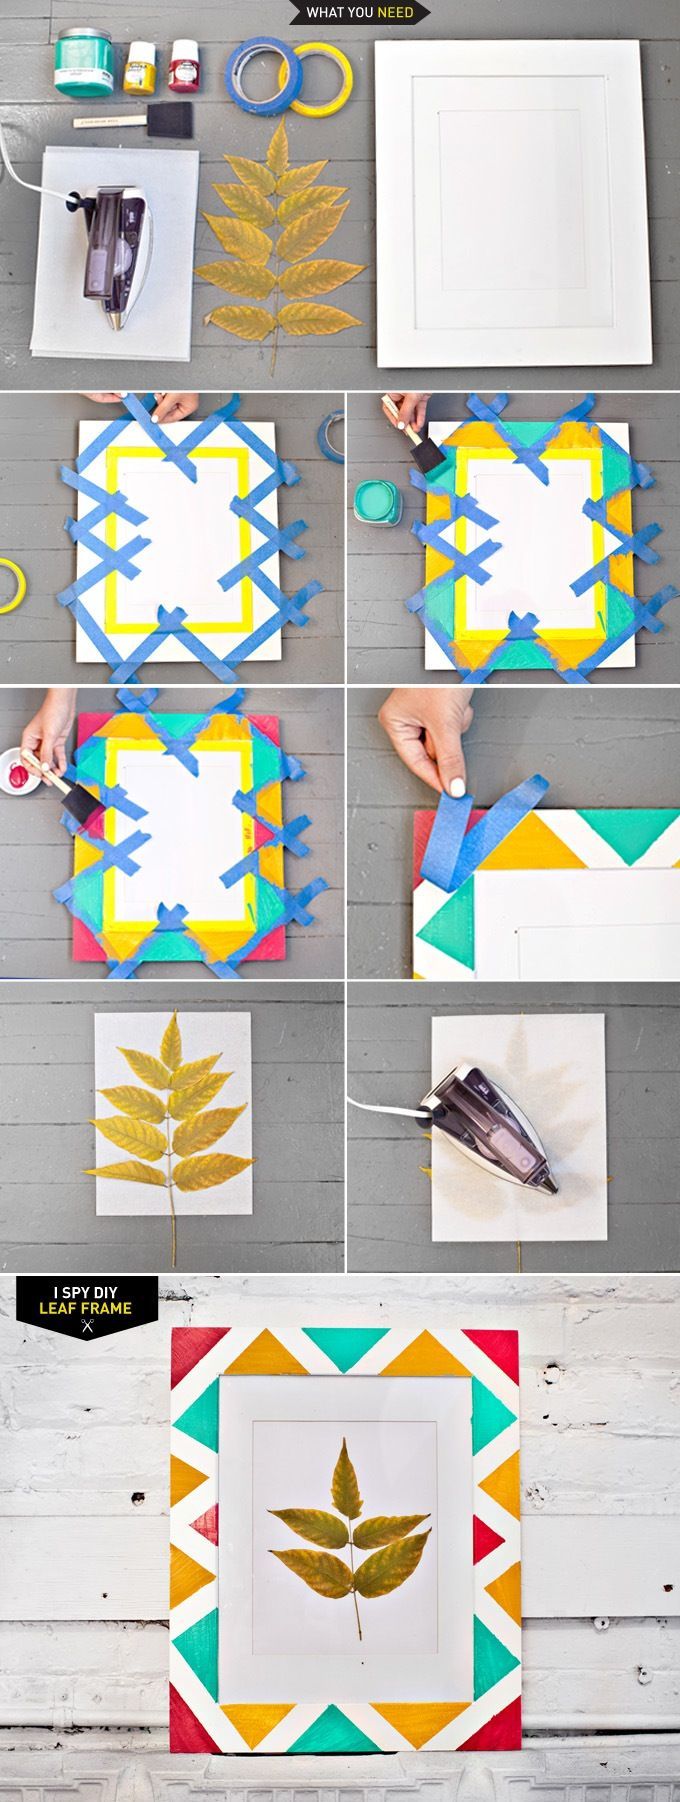 DIY STEP-BY-STEP | Leaf Frame | I Spy DIY Step-by-Step | Pinterest ...